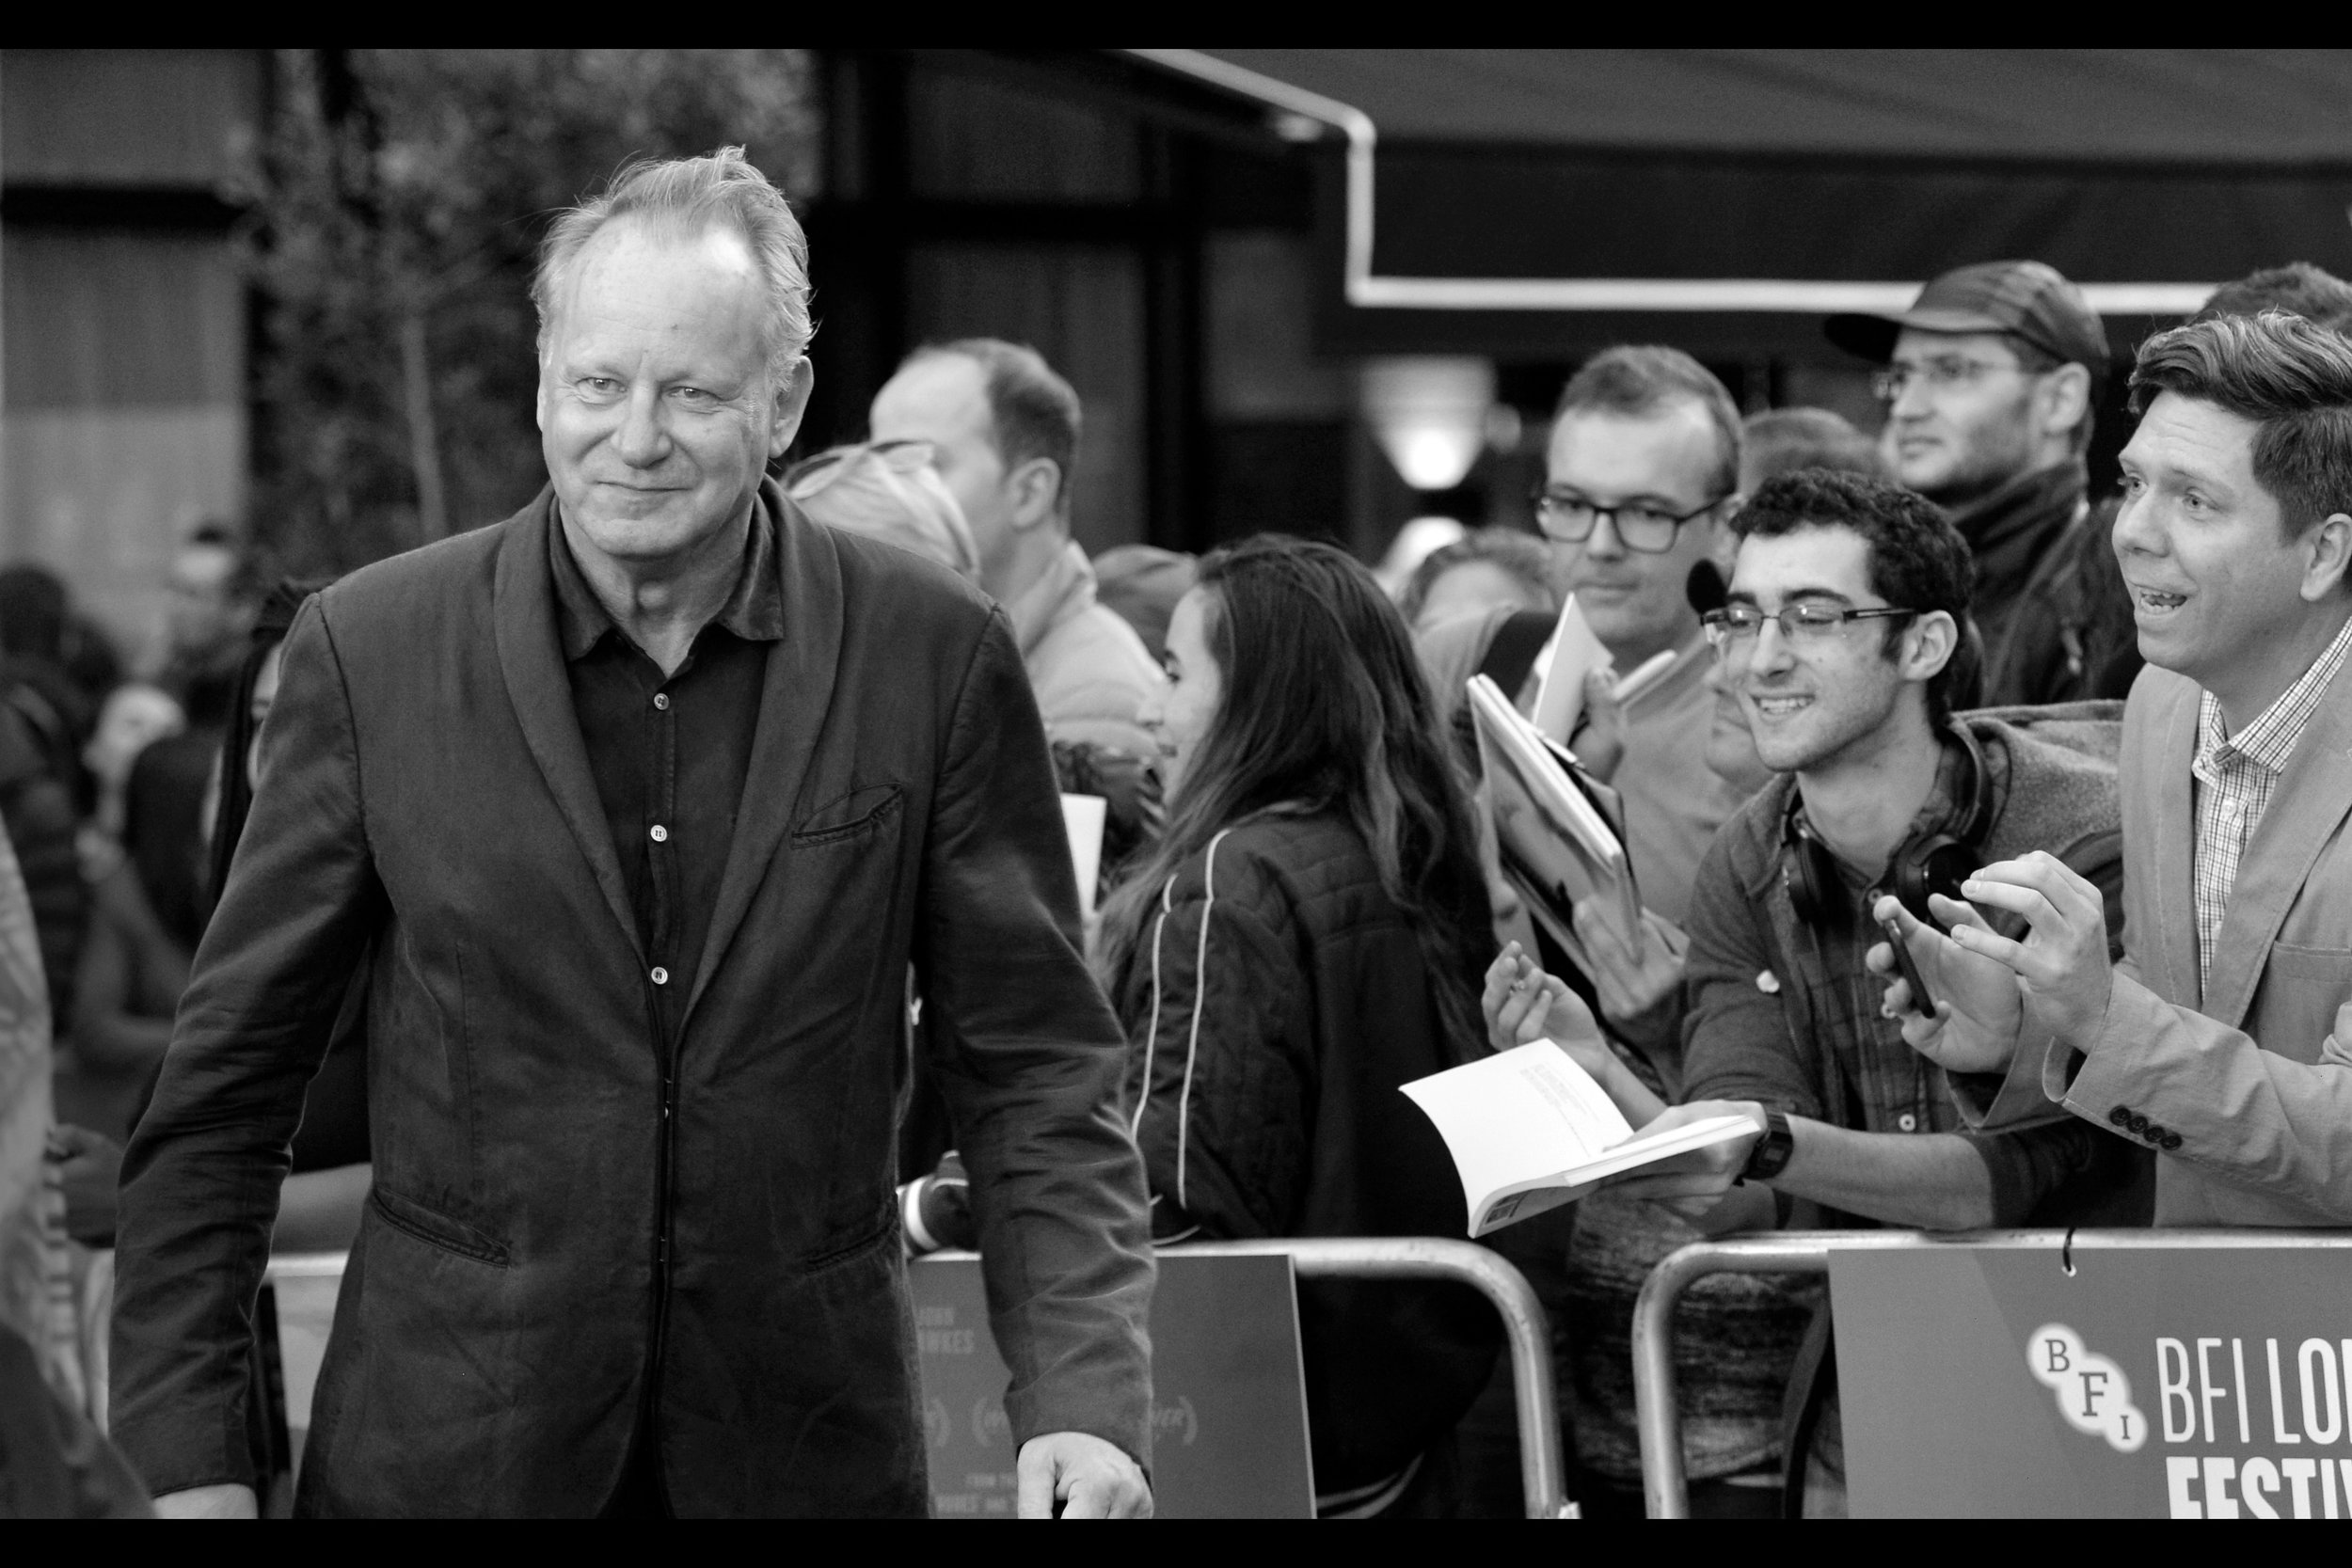 Our first arrival is not in this movie, but Stellan Skarsgard has been in movies as diverse as David Fincher (  The Girl With The Dragon Tattoo  ) and Marvel (  Thor The Dark World   for example)